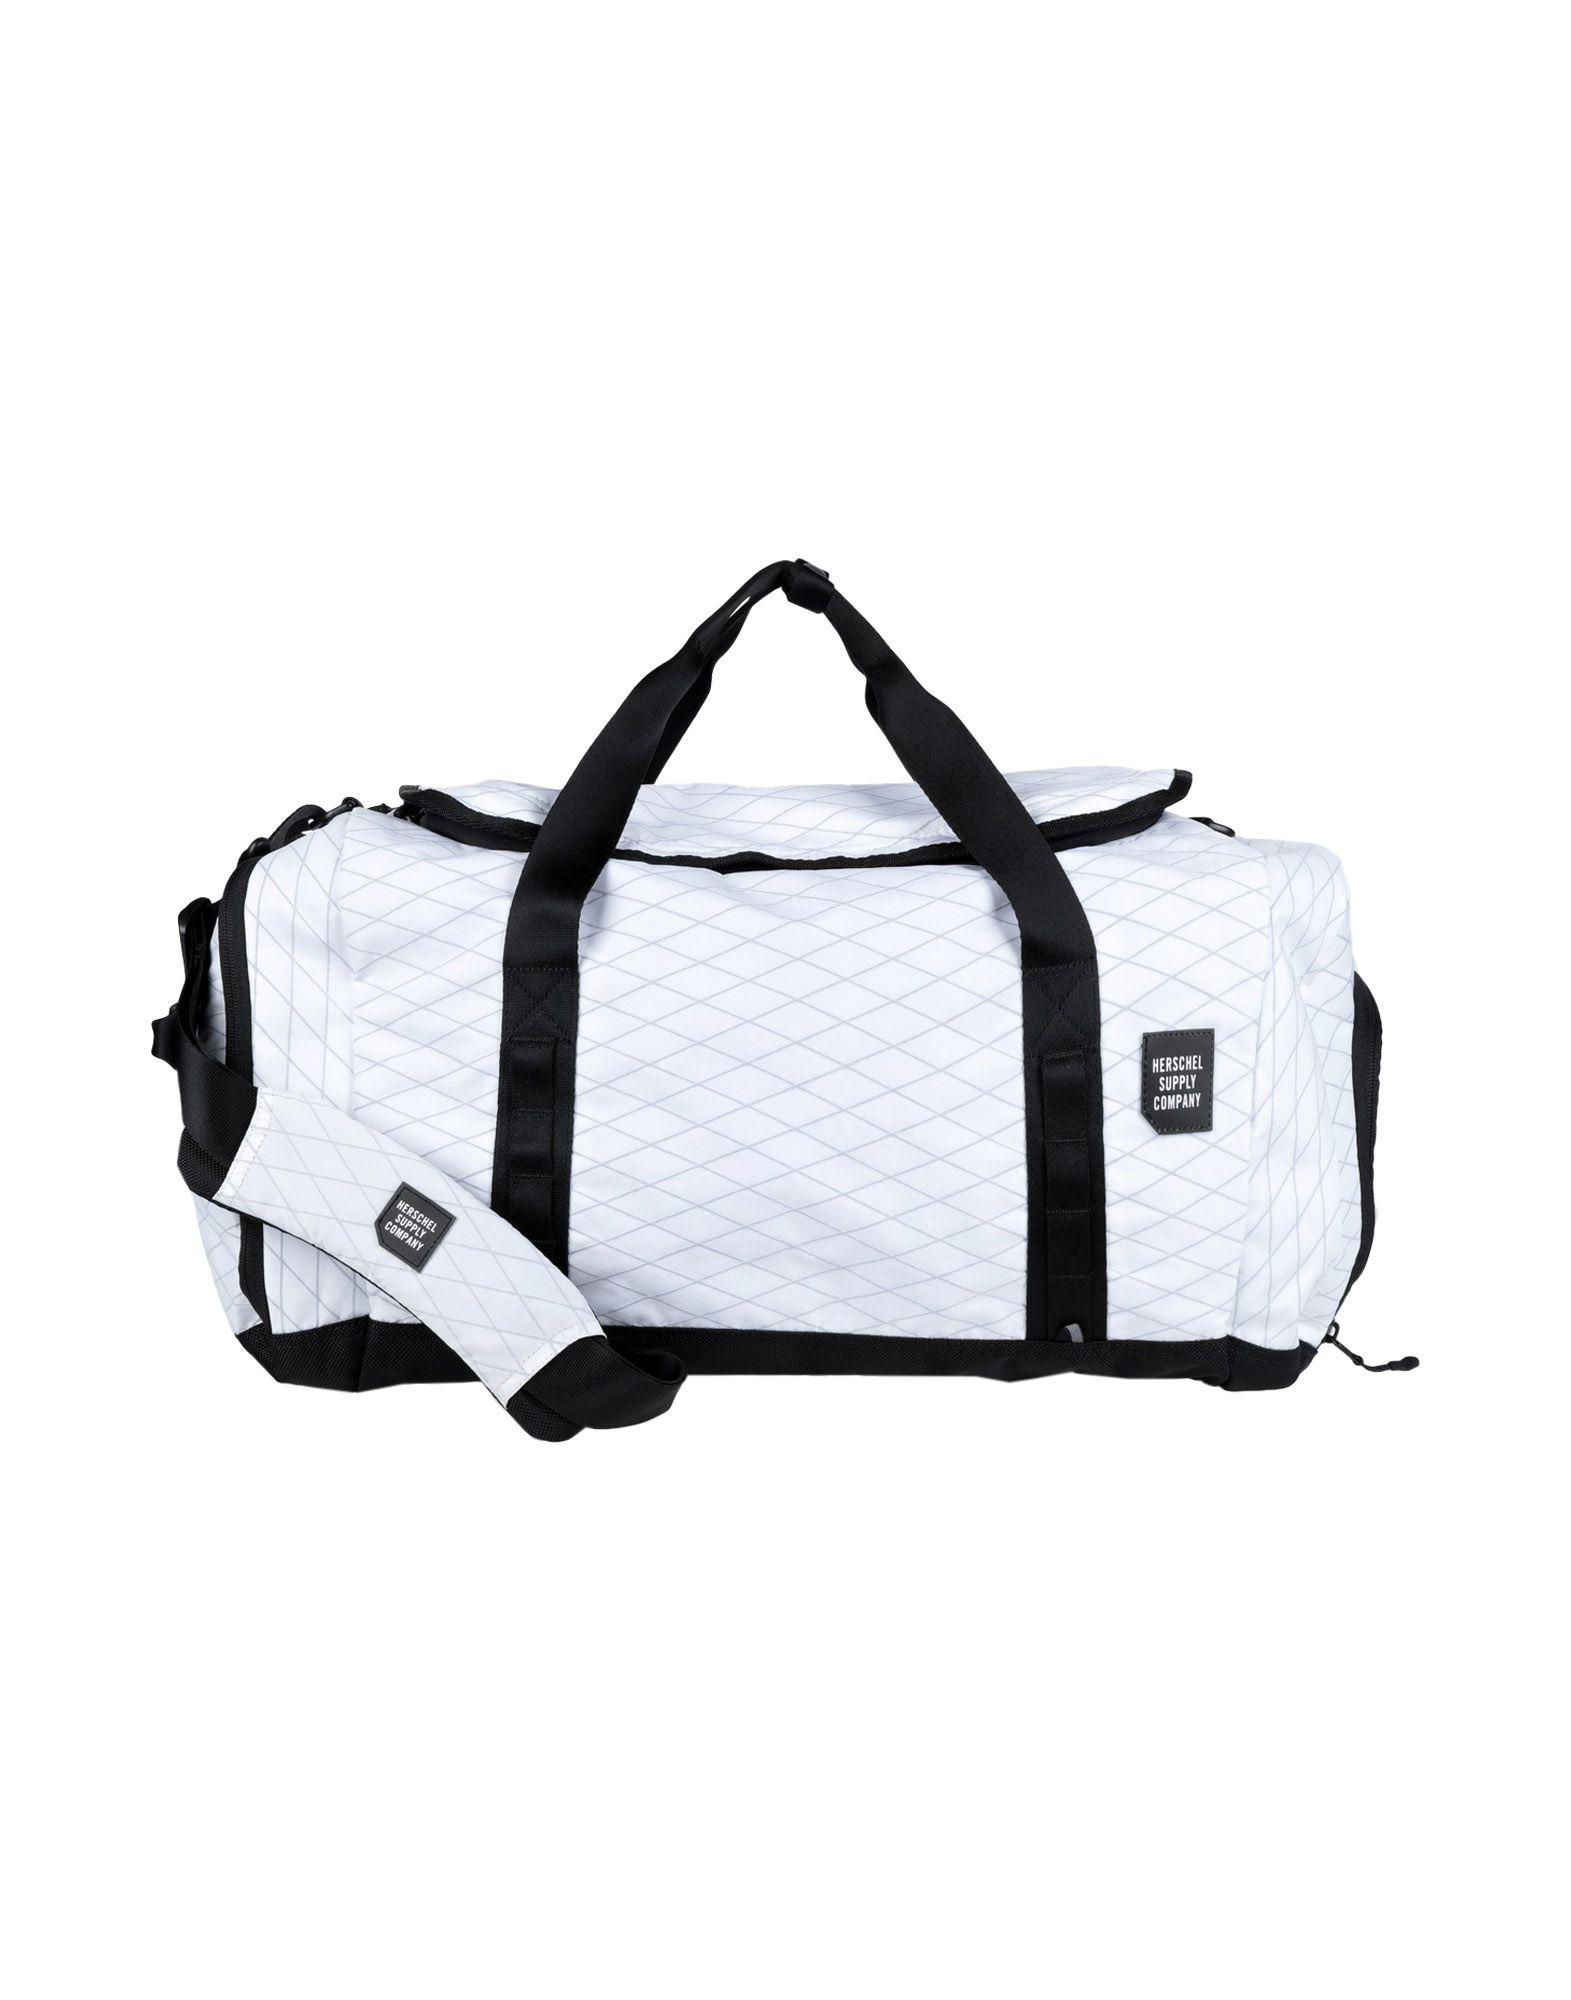 Herschel Supply Co. Travel   Duffel Bags in White for Men - Lyst bdabbc1175efc